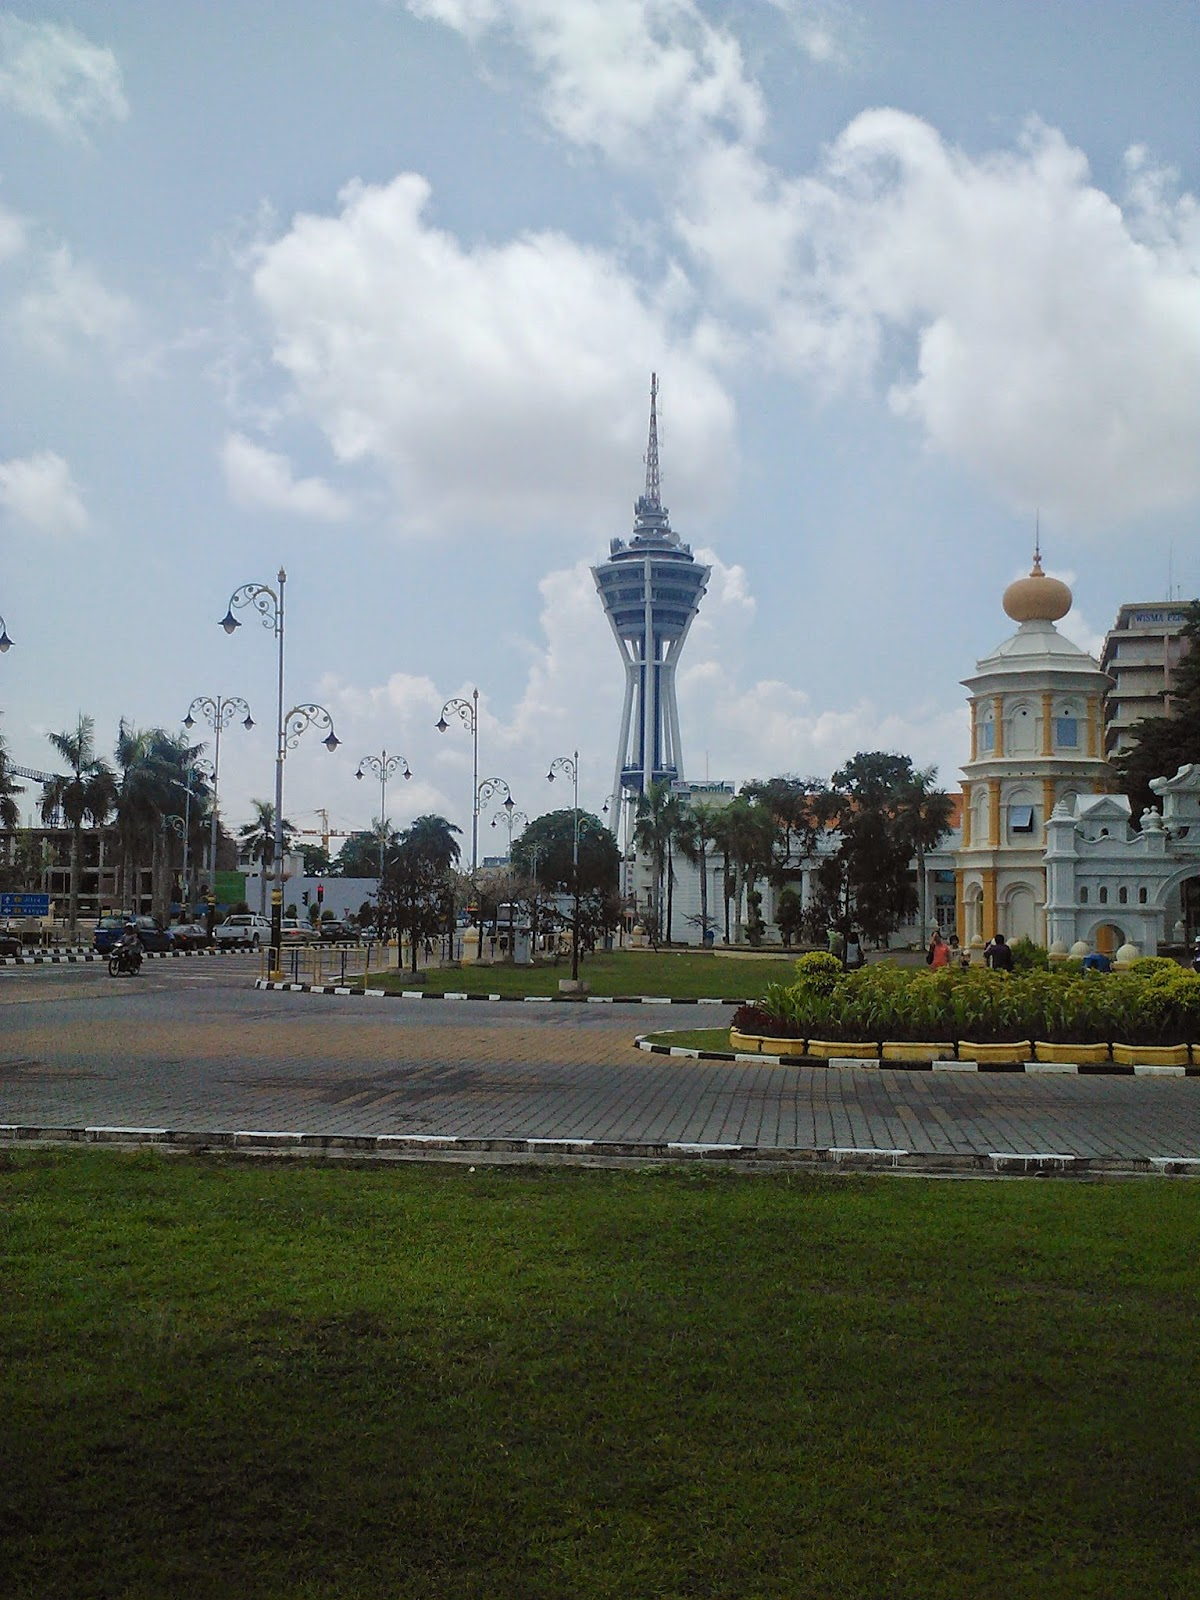 alor setar chat sites Things to do in alor setar, malaysia: see tripadvisor's 695 traveller reviews and photos of alor setar tourist attractions find what to do today, this weekend, or in august.